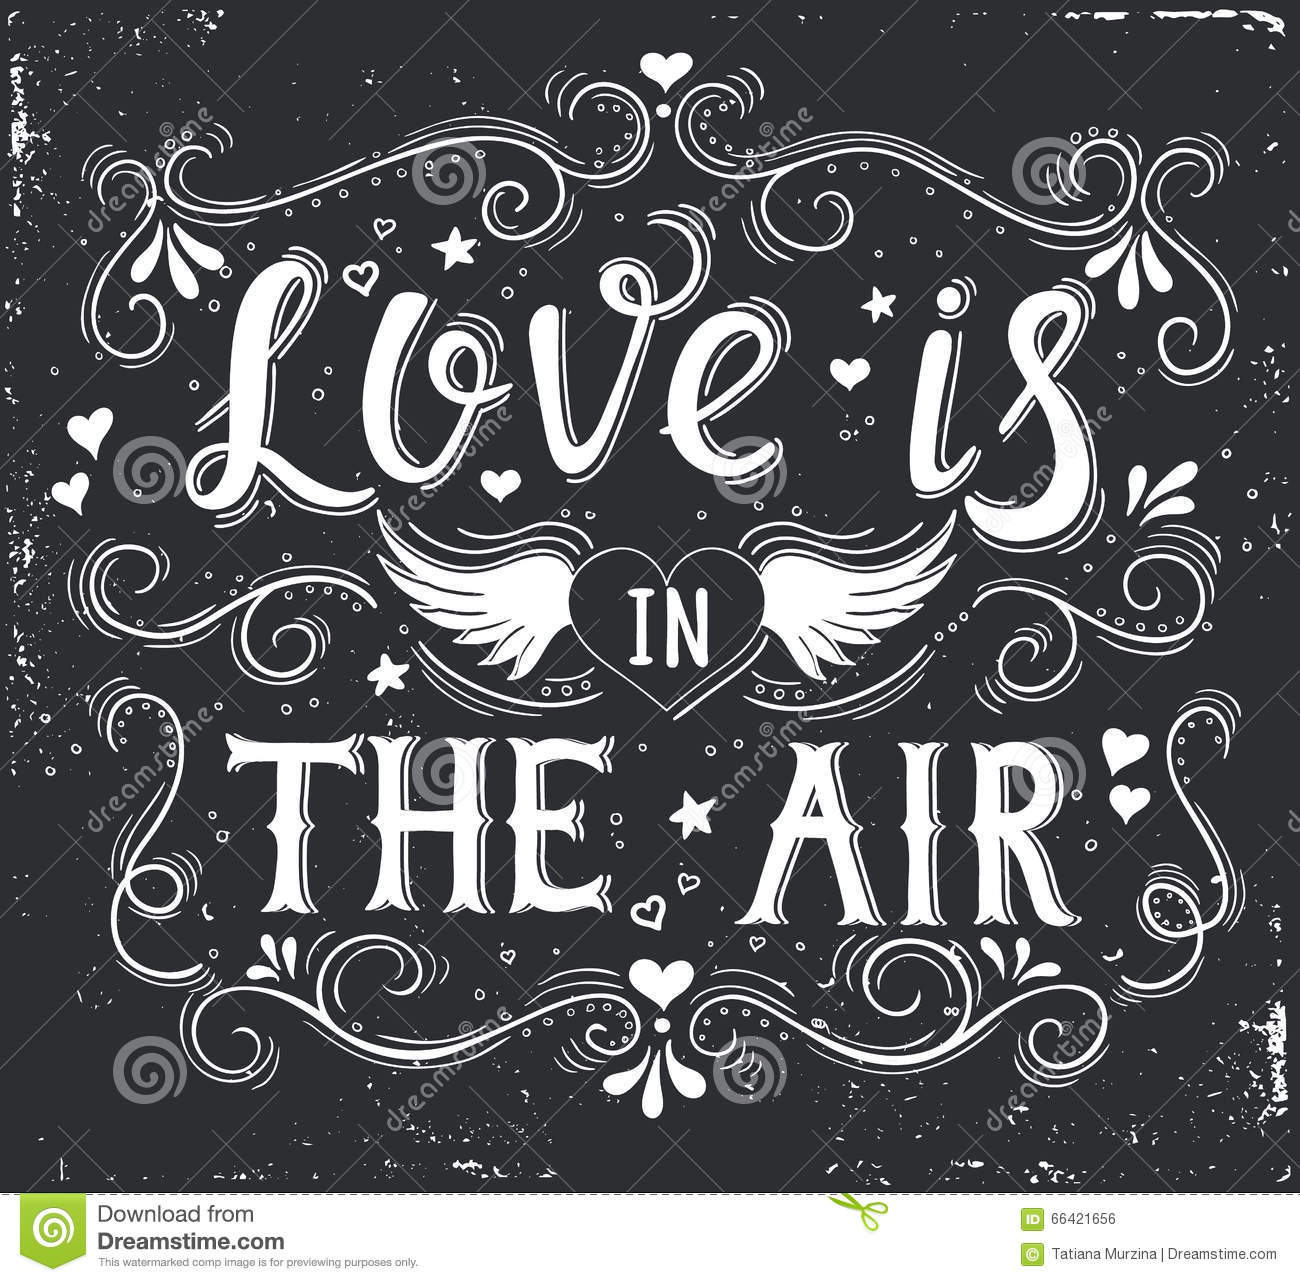 Love is in the air. Hand drawn typography poster.